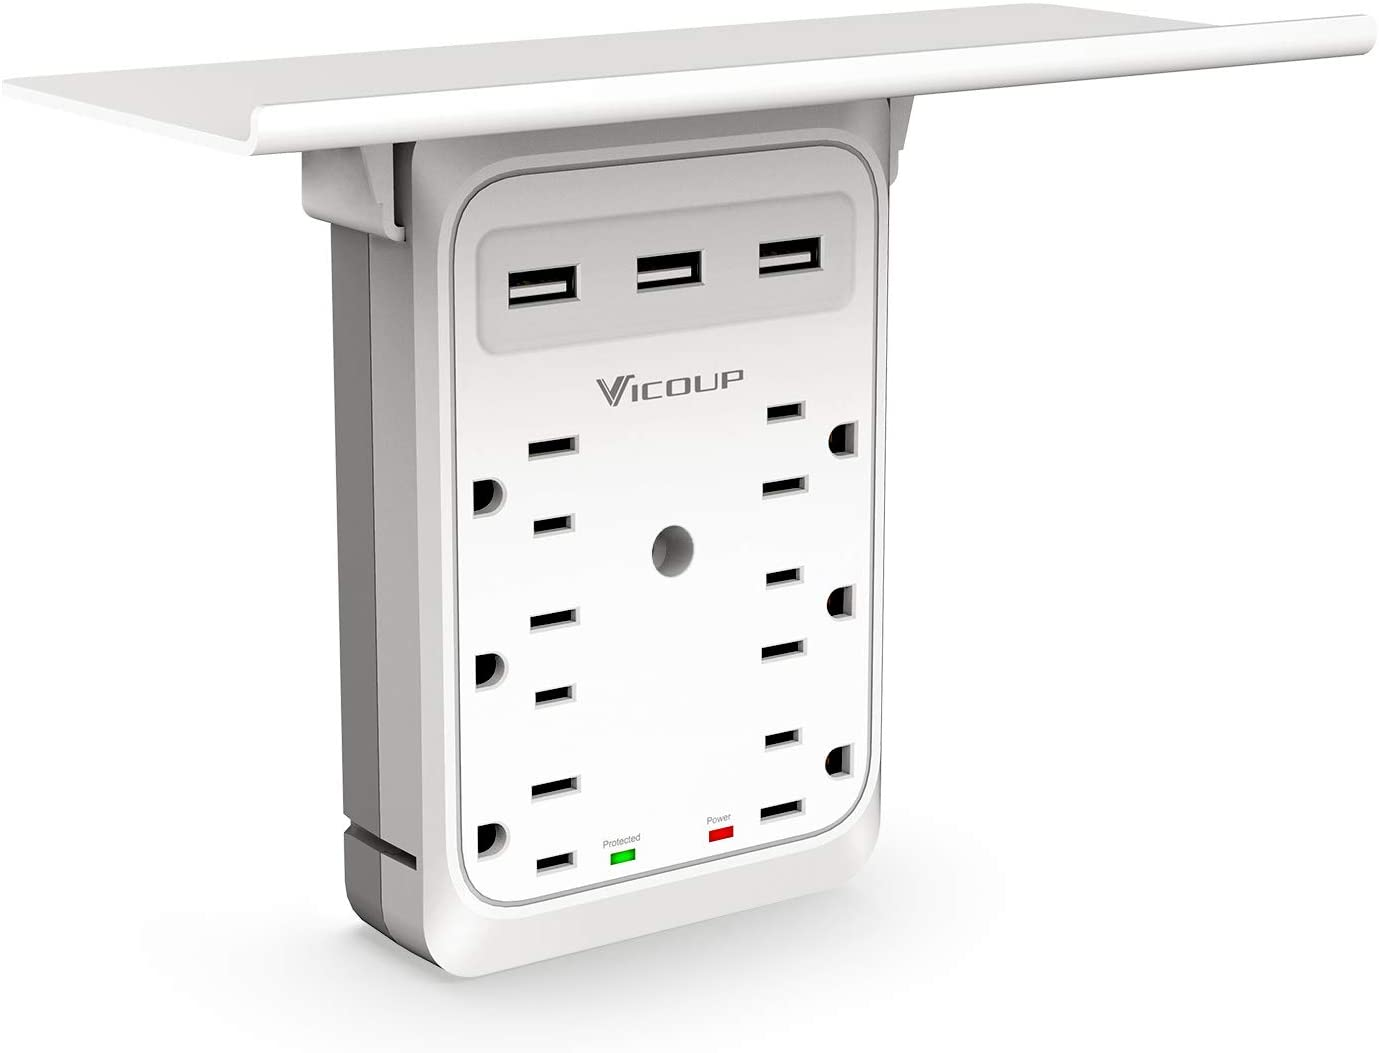 SOCKET OUTLET SHELF VICOUP 9 PORT MULTI PLUG WALL OUTLET SURGE PROTECTOR 1080J 3 USB PORTS (3.4A TOTAL) AND SUPER CONVENIENT SHELF FOR CELL PHONE PLACEMENT - VI168